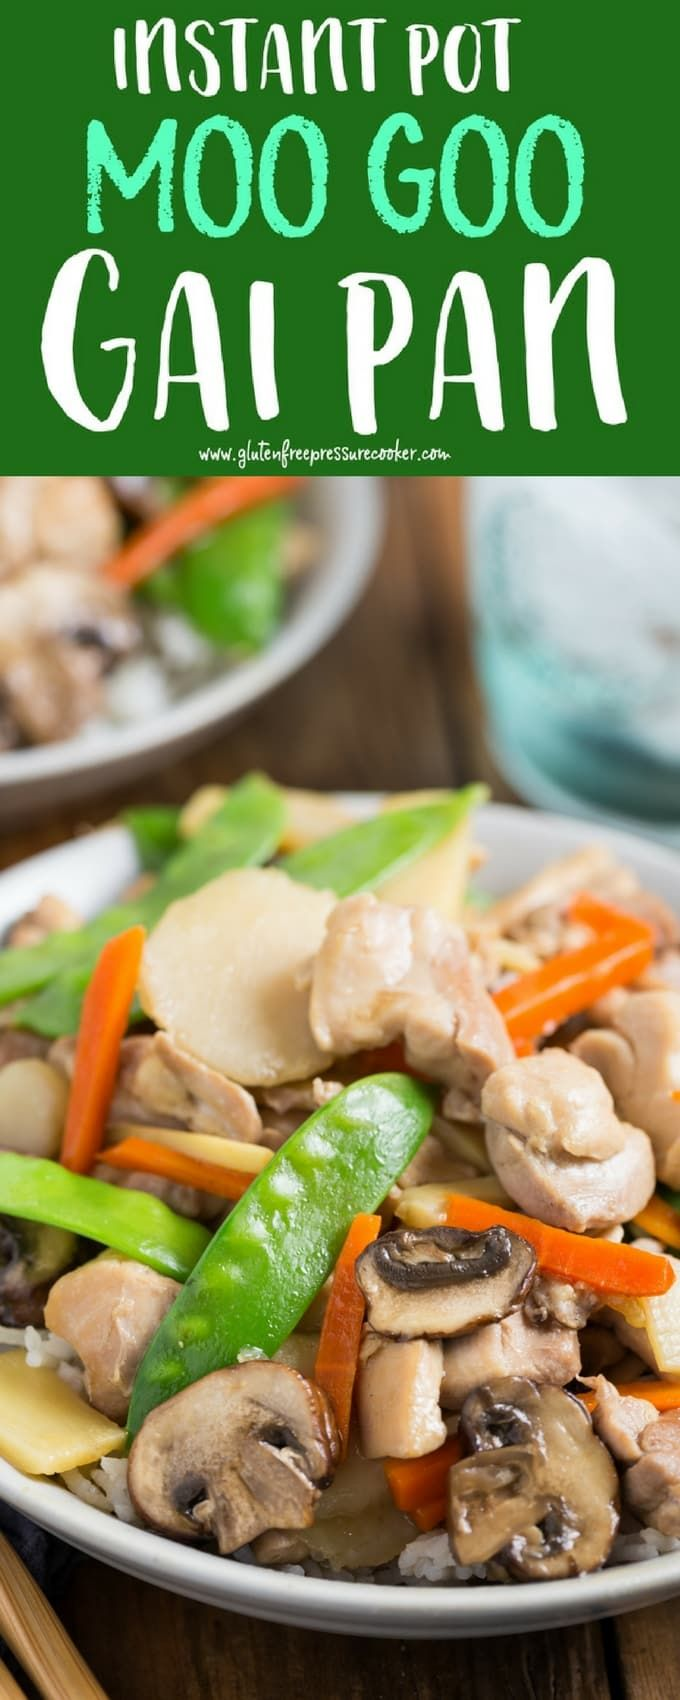 This Pressure Cooker Moo Goo Gai Pan Is So Easy To Cook, Your Whole Family